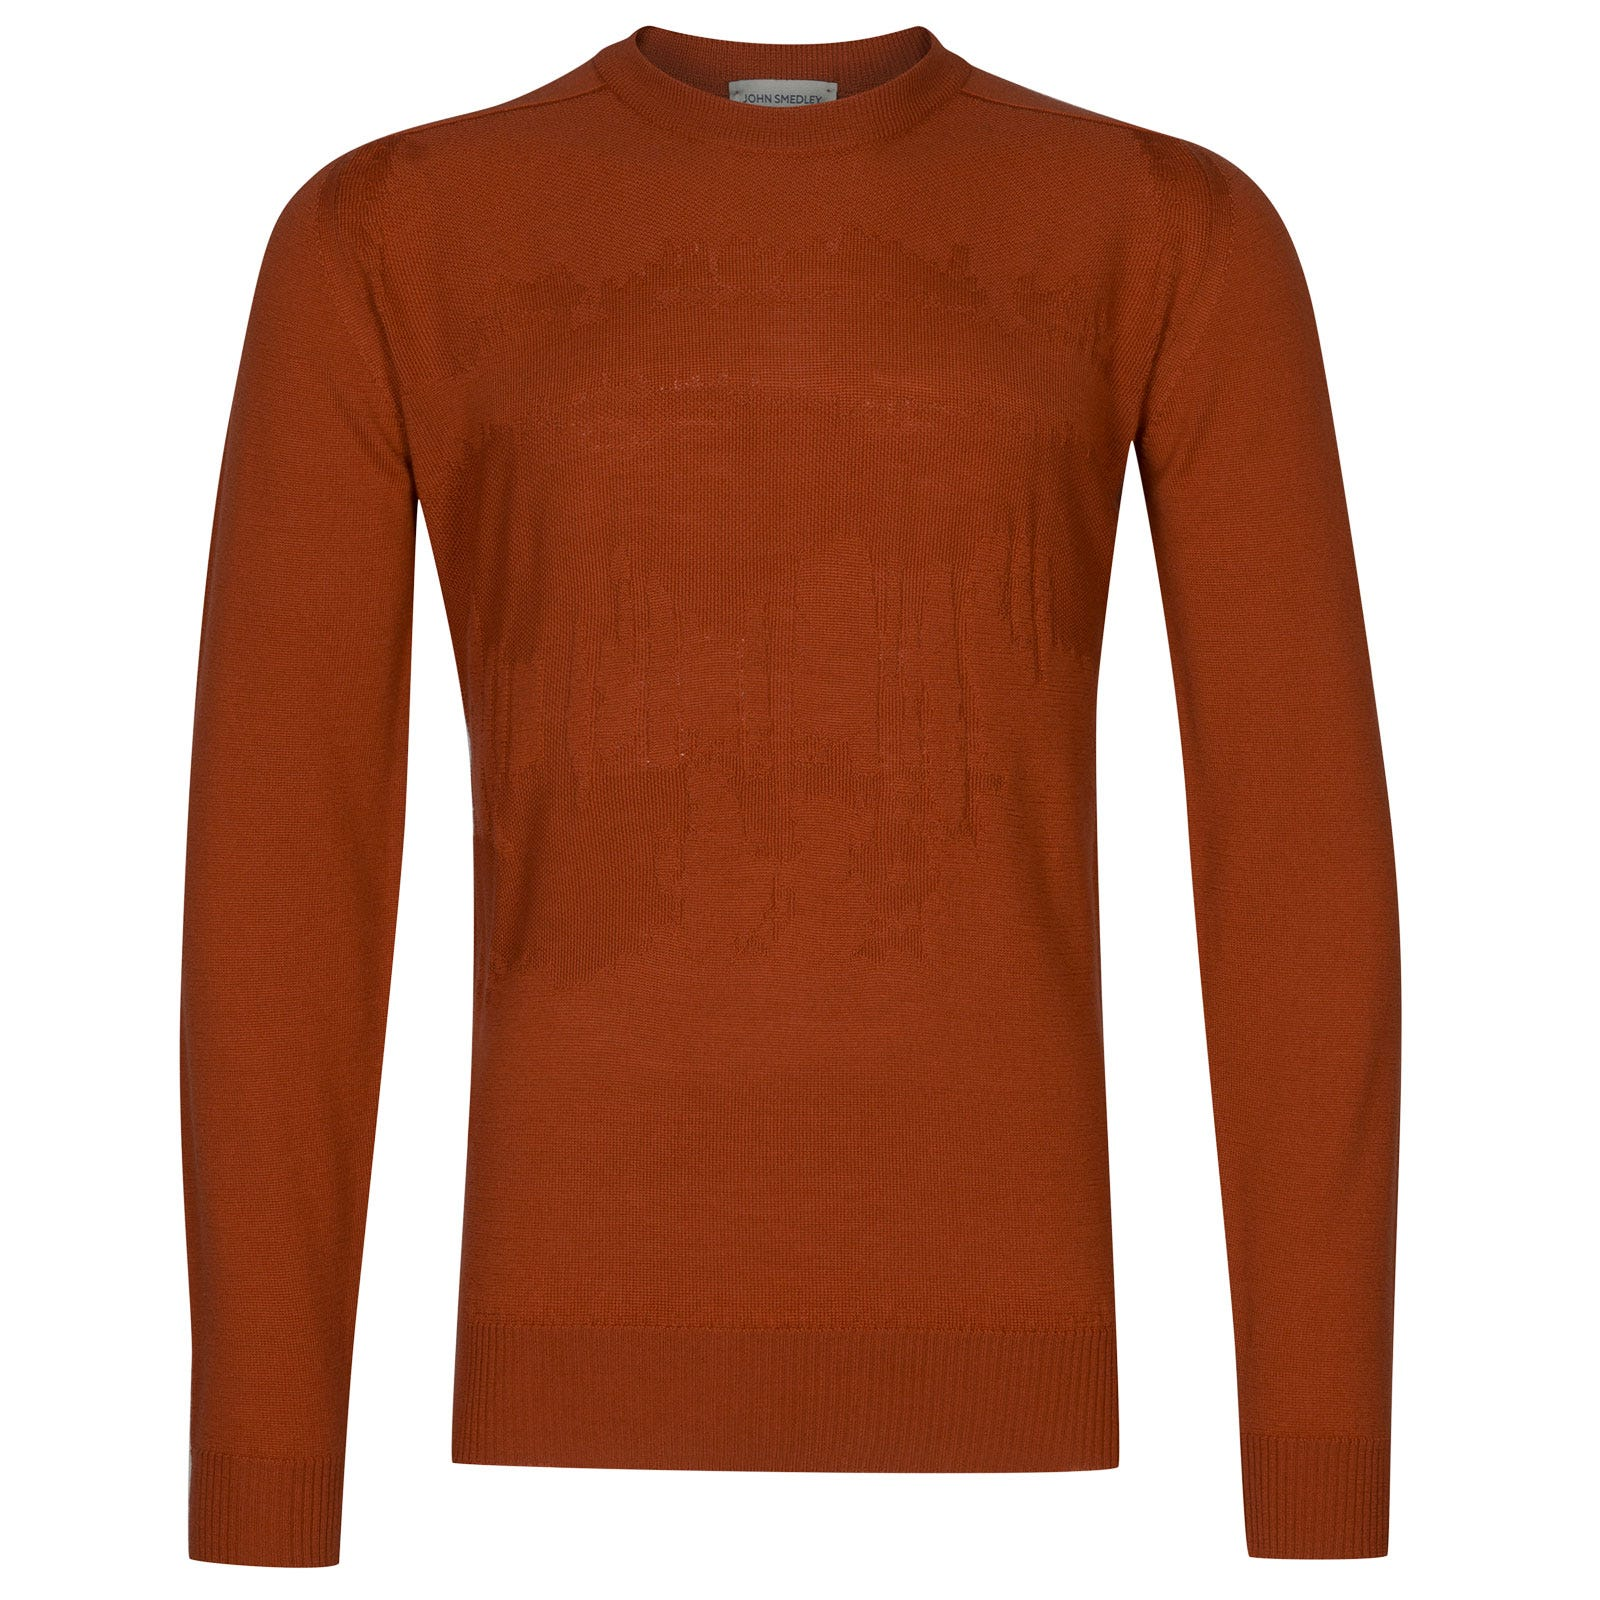 John Smedley sorbus Merino Wool Pullover in Flare Orange-M